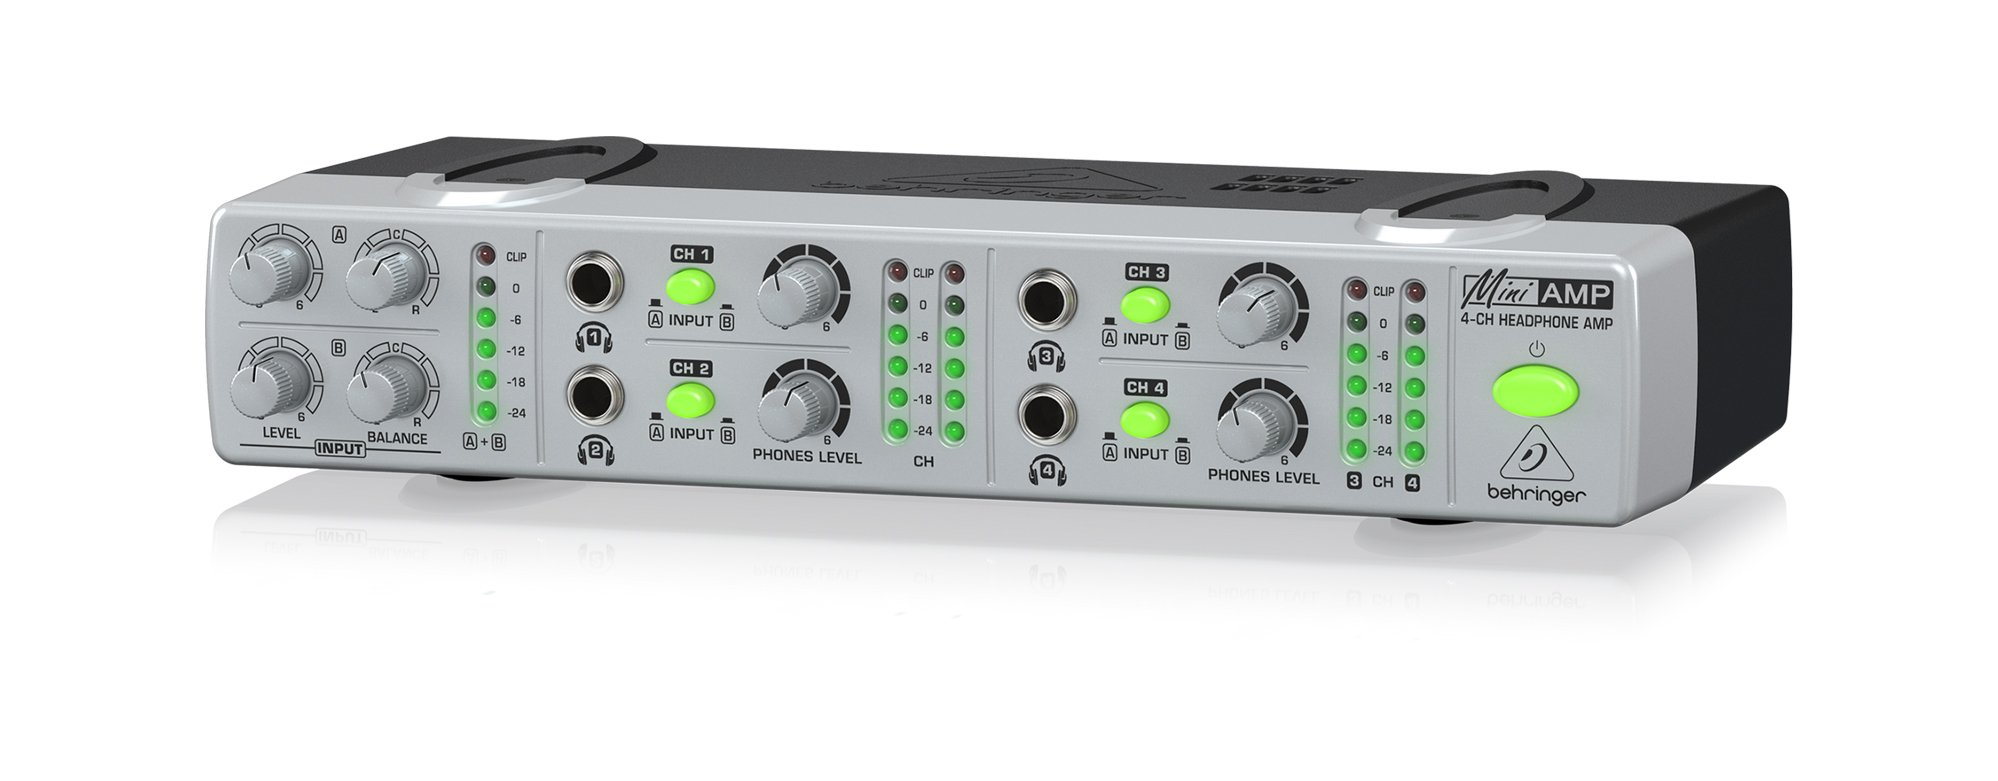 Compact 4-Channel Stereo Headphone Amplifier